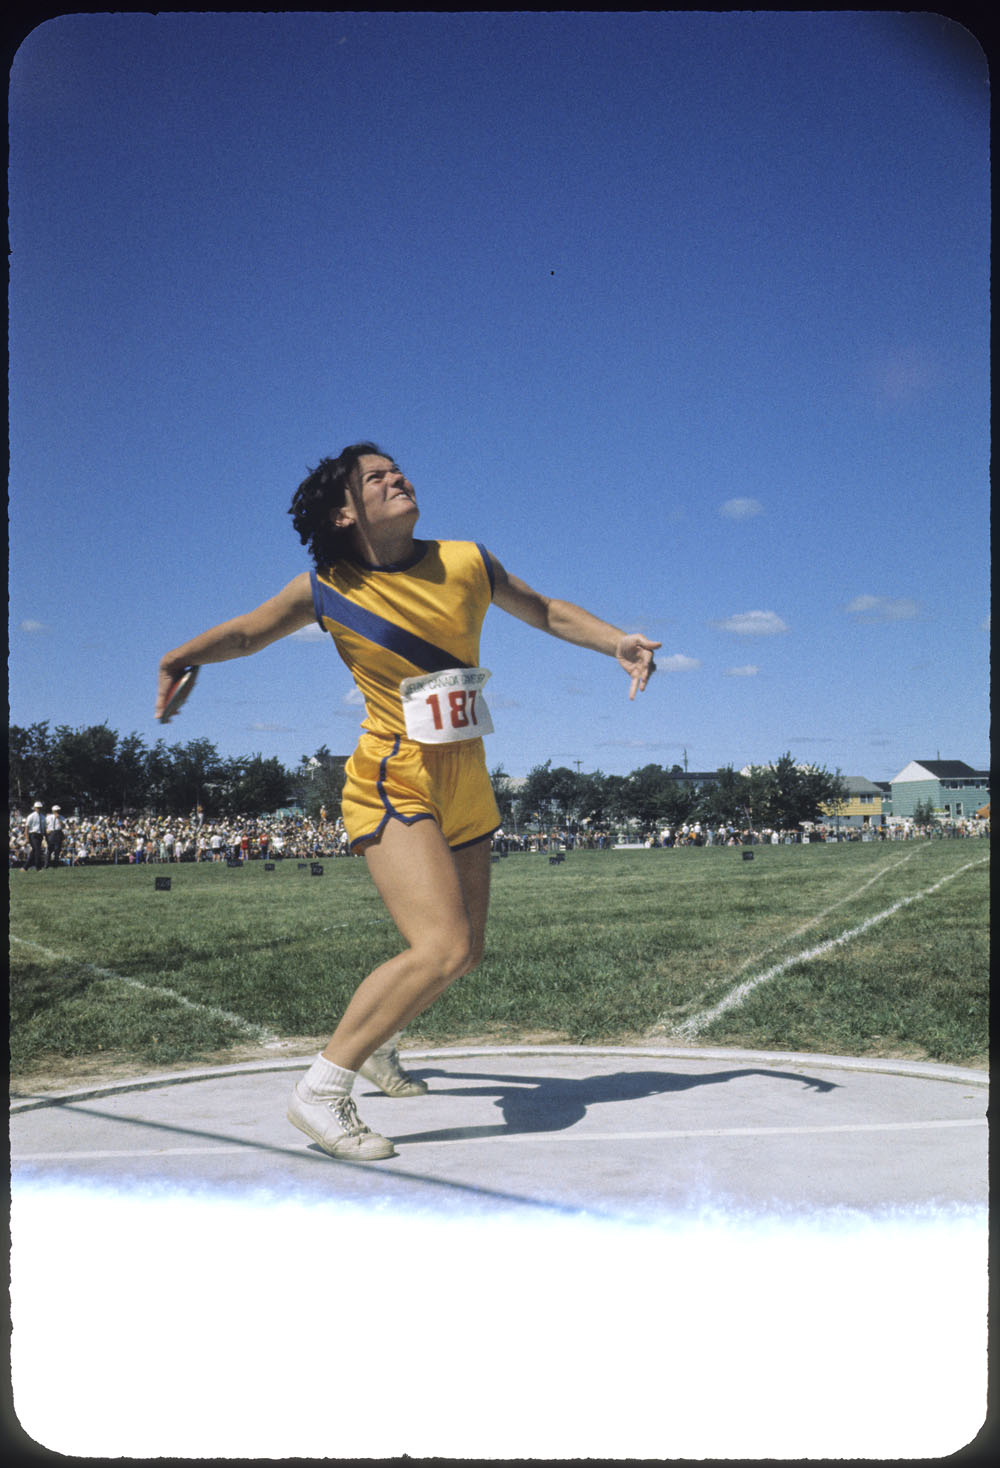 Female discus thrower in middle of discus toss during the first Canadian Summer Games at Halifax-Dartmouth